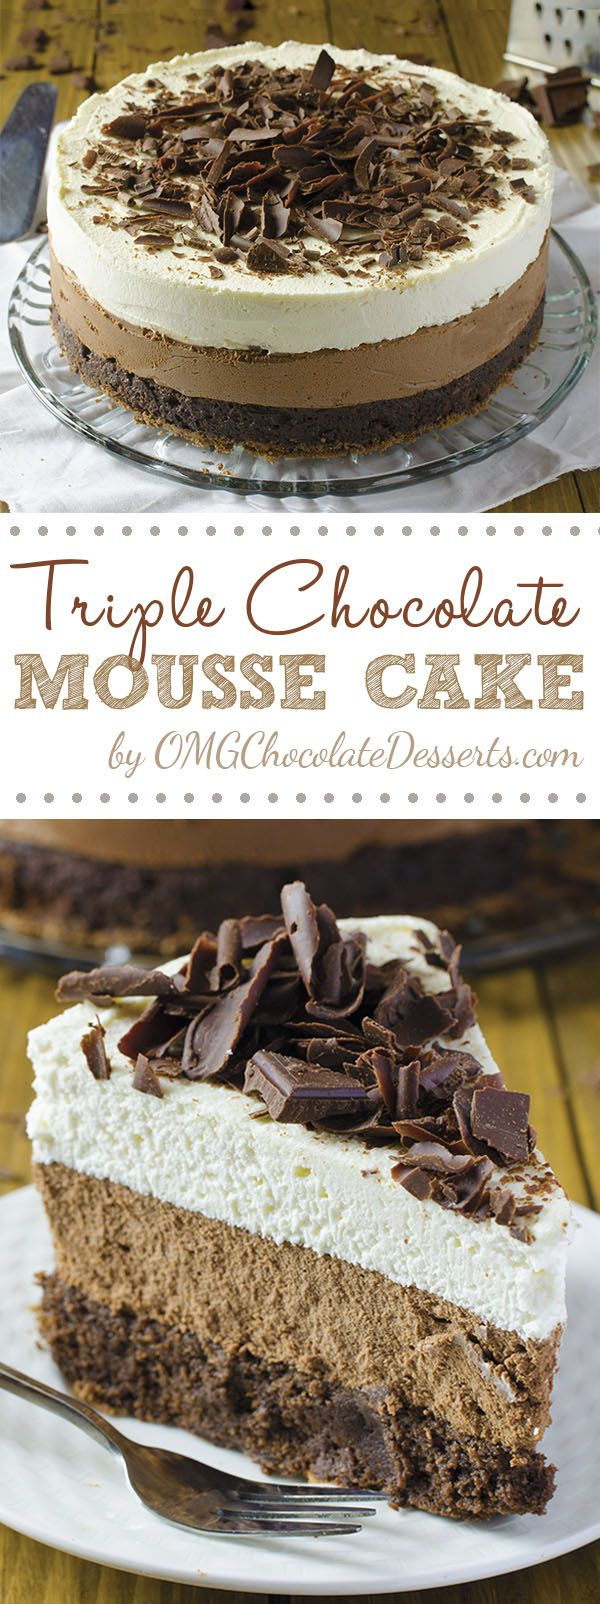 One of the most decadent chocolate cakes ever – Triple Chocolate Mousse Cake…